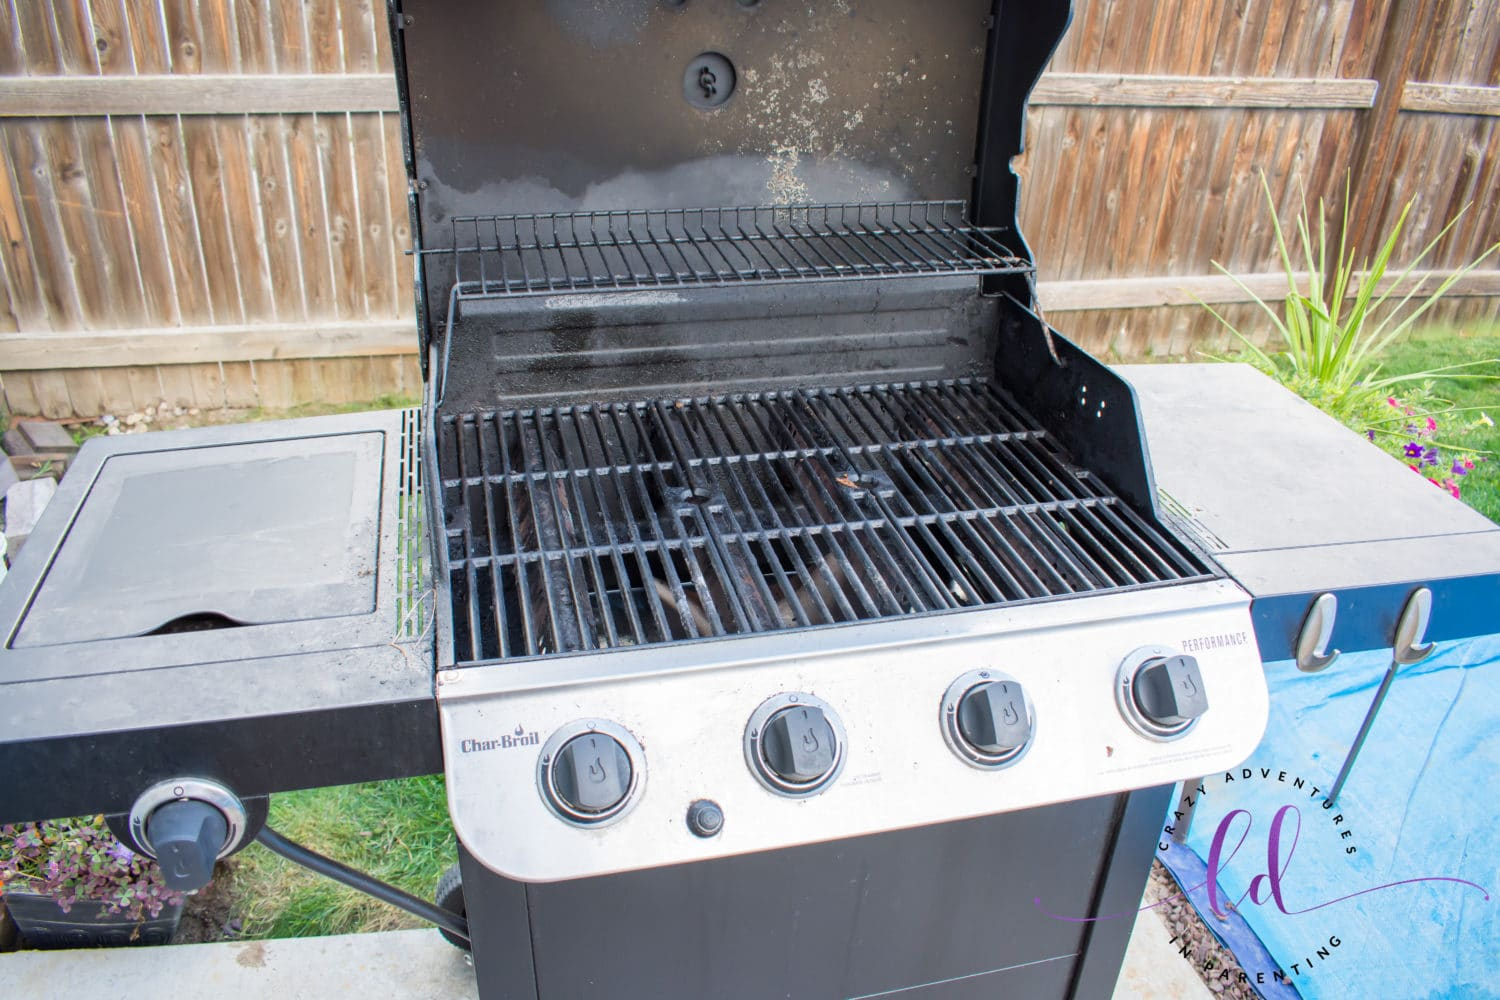 A Look Inside Before Using Goo Gone Grill and Grate Cleaner